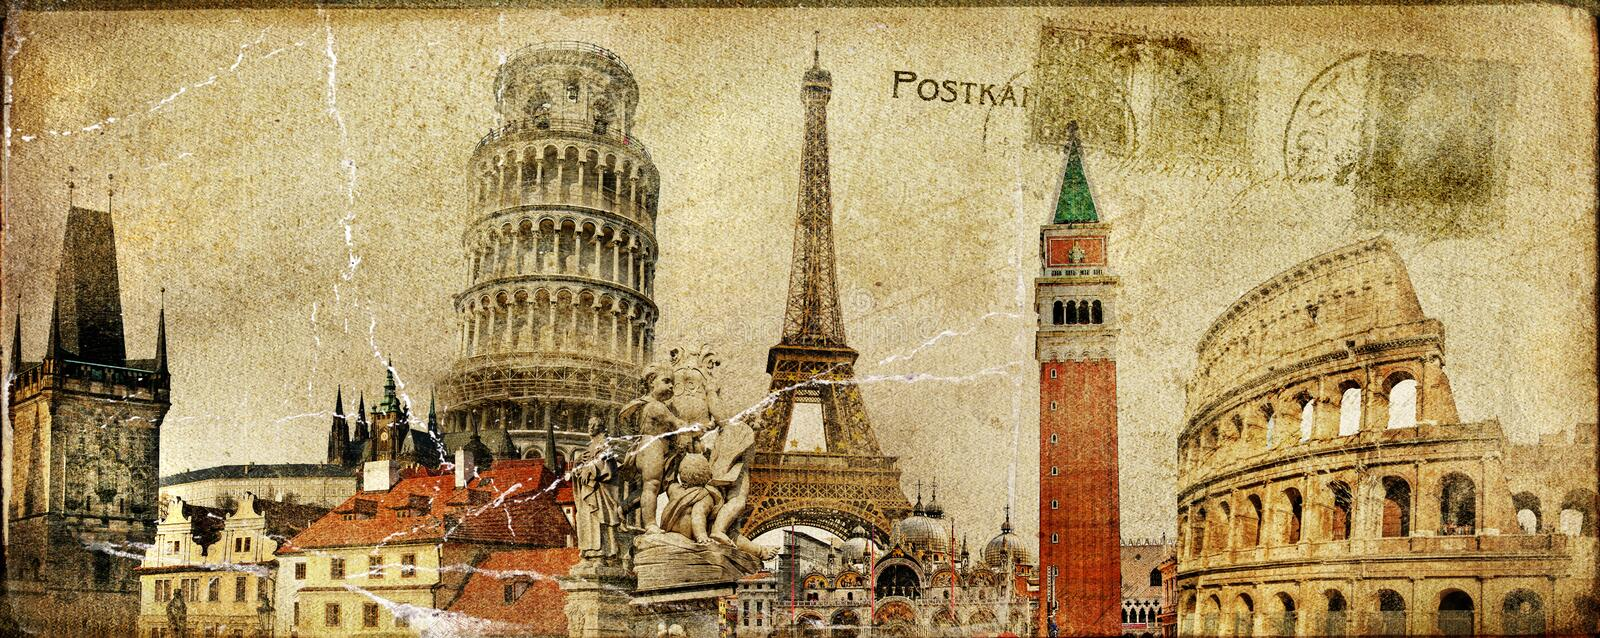 Travel - around Europe. Vintage post card - European holidays